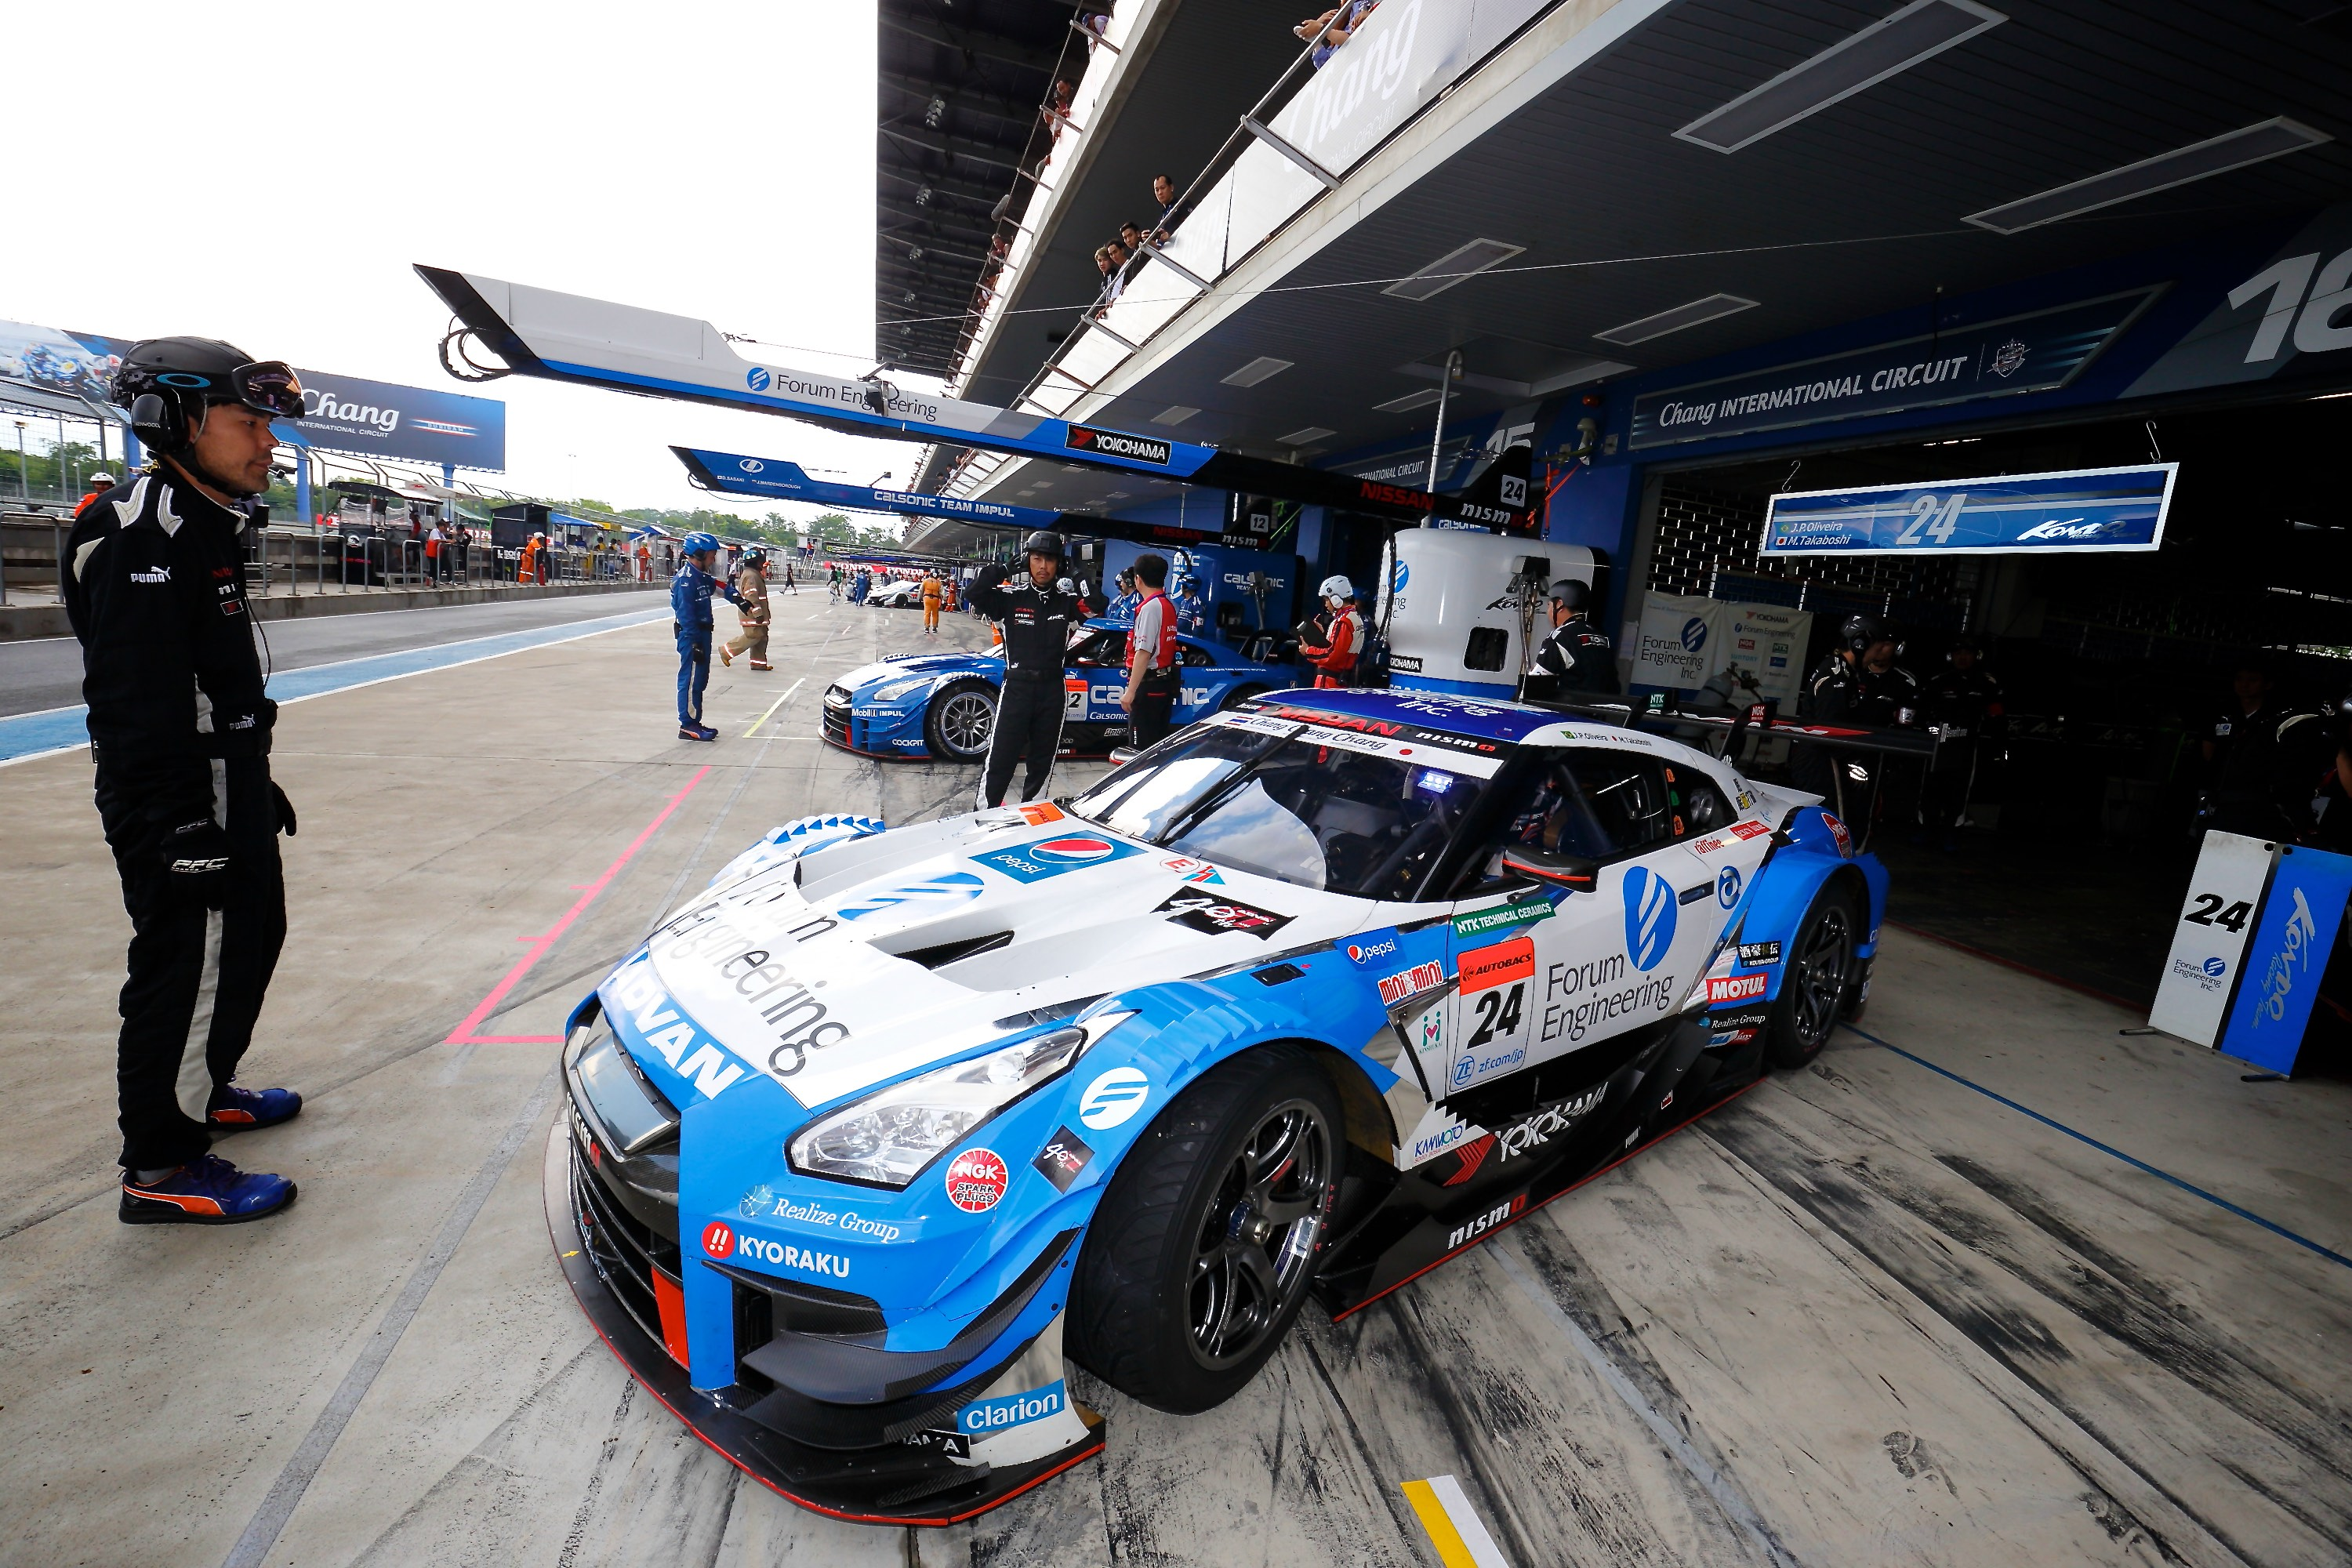 More Super Gt Thailand Action Nissan Motorsports Go Back Gallery For Series Circuits Formulas Images From The Japanese Championship Round 3 At Chang International Circuit N